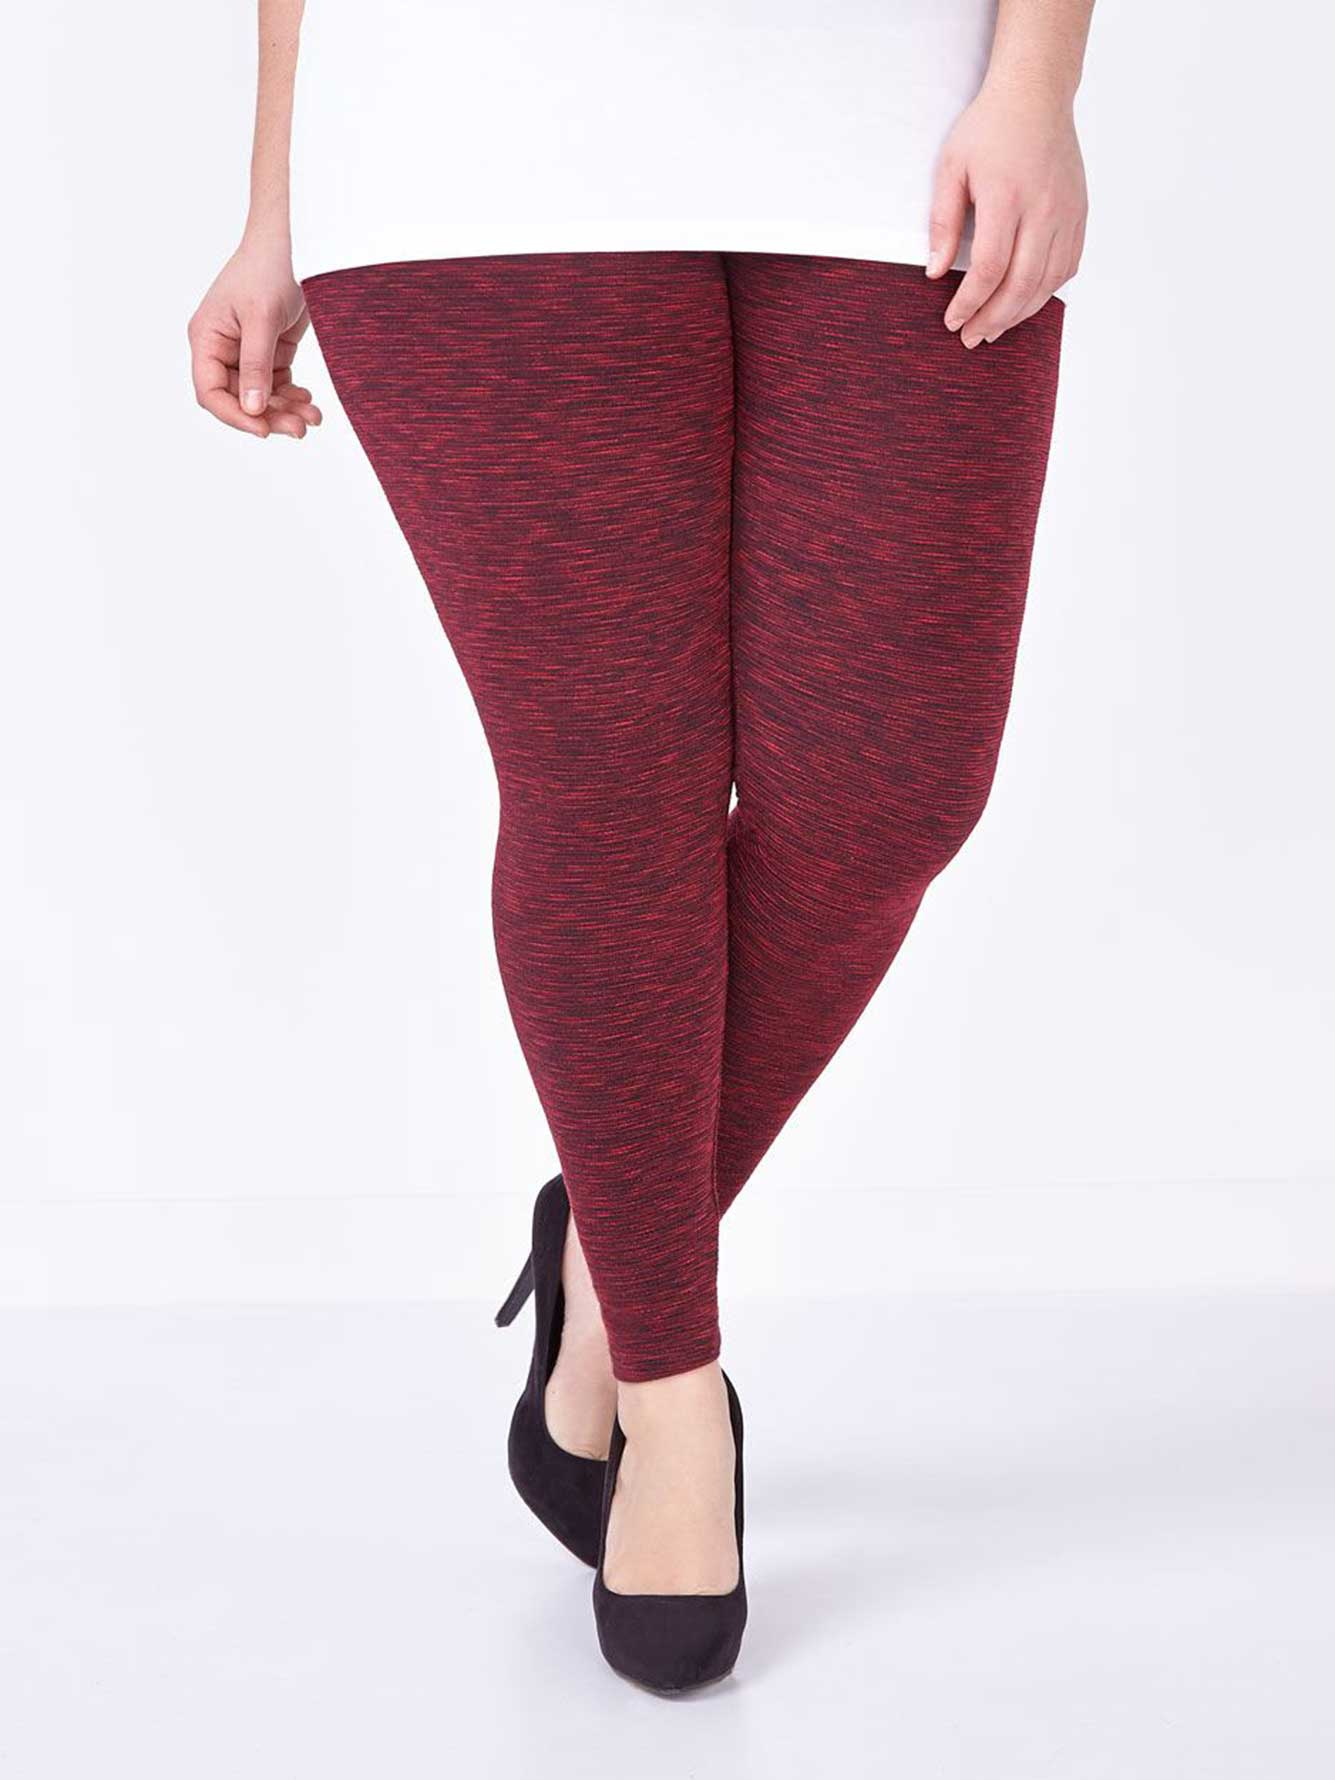 Textured Leggings with Striped Sides has been successfully added to the Registry -Qty: If this is not correct, please go to the